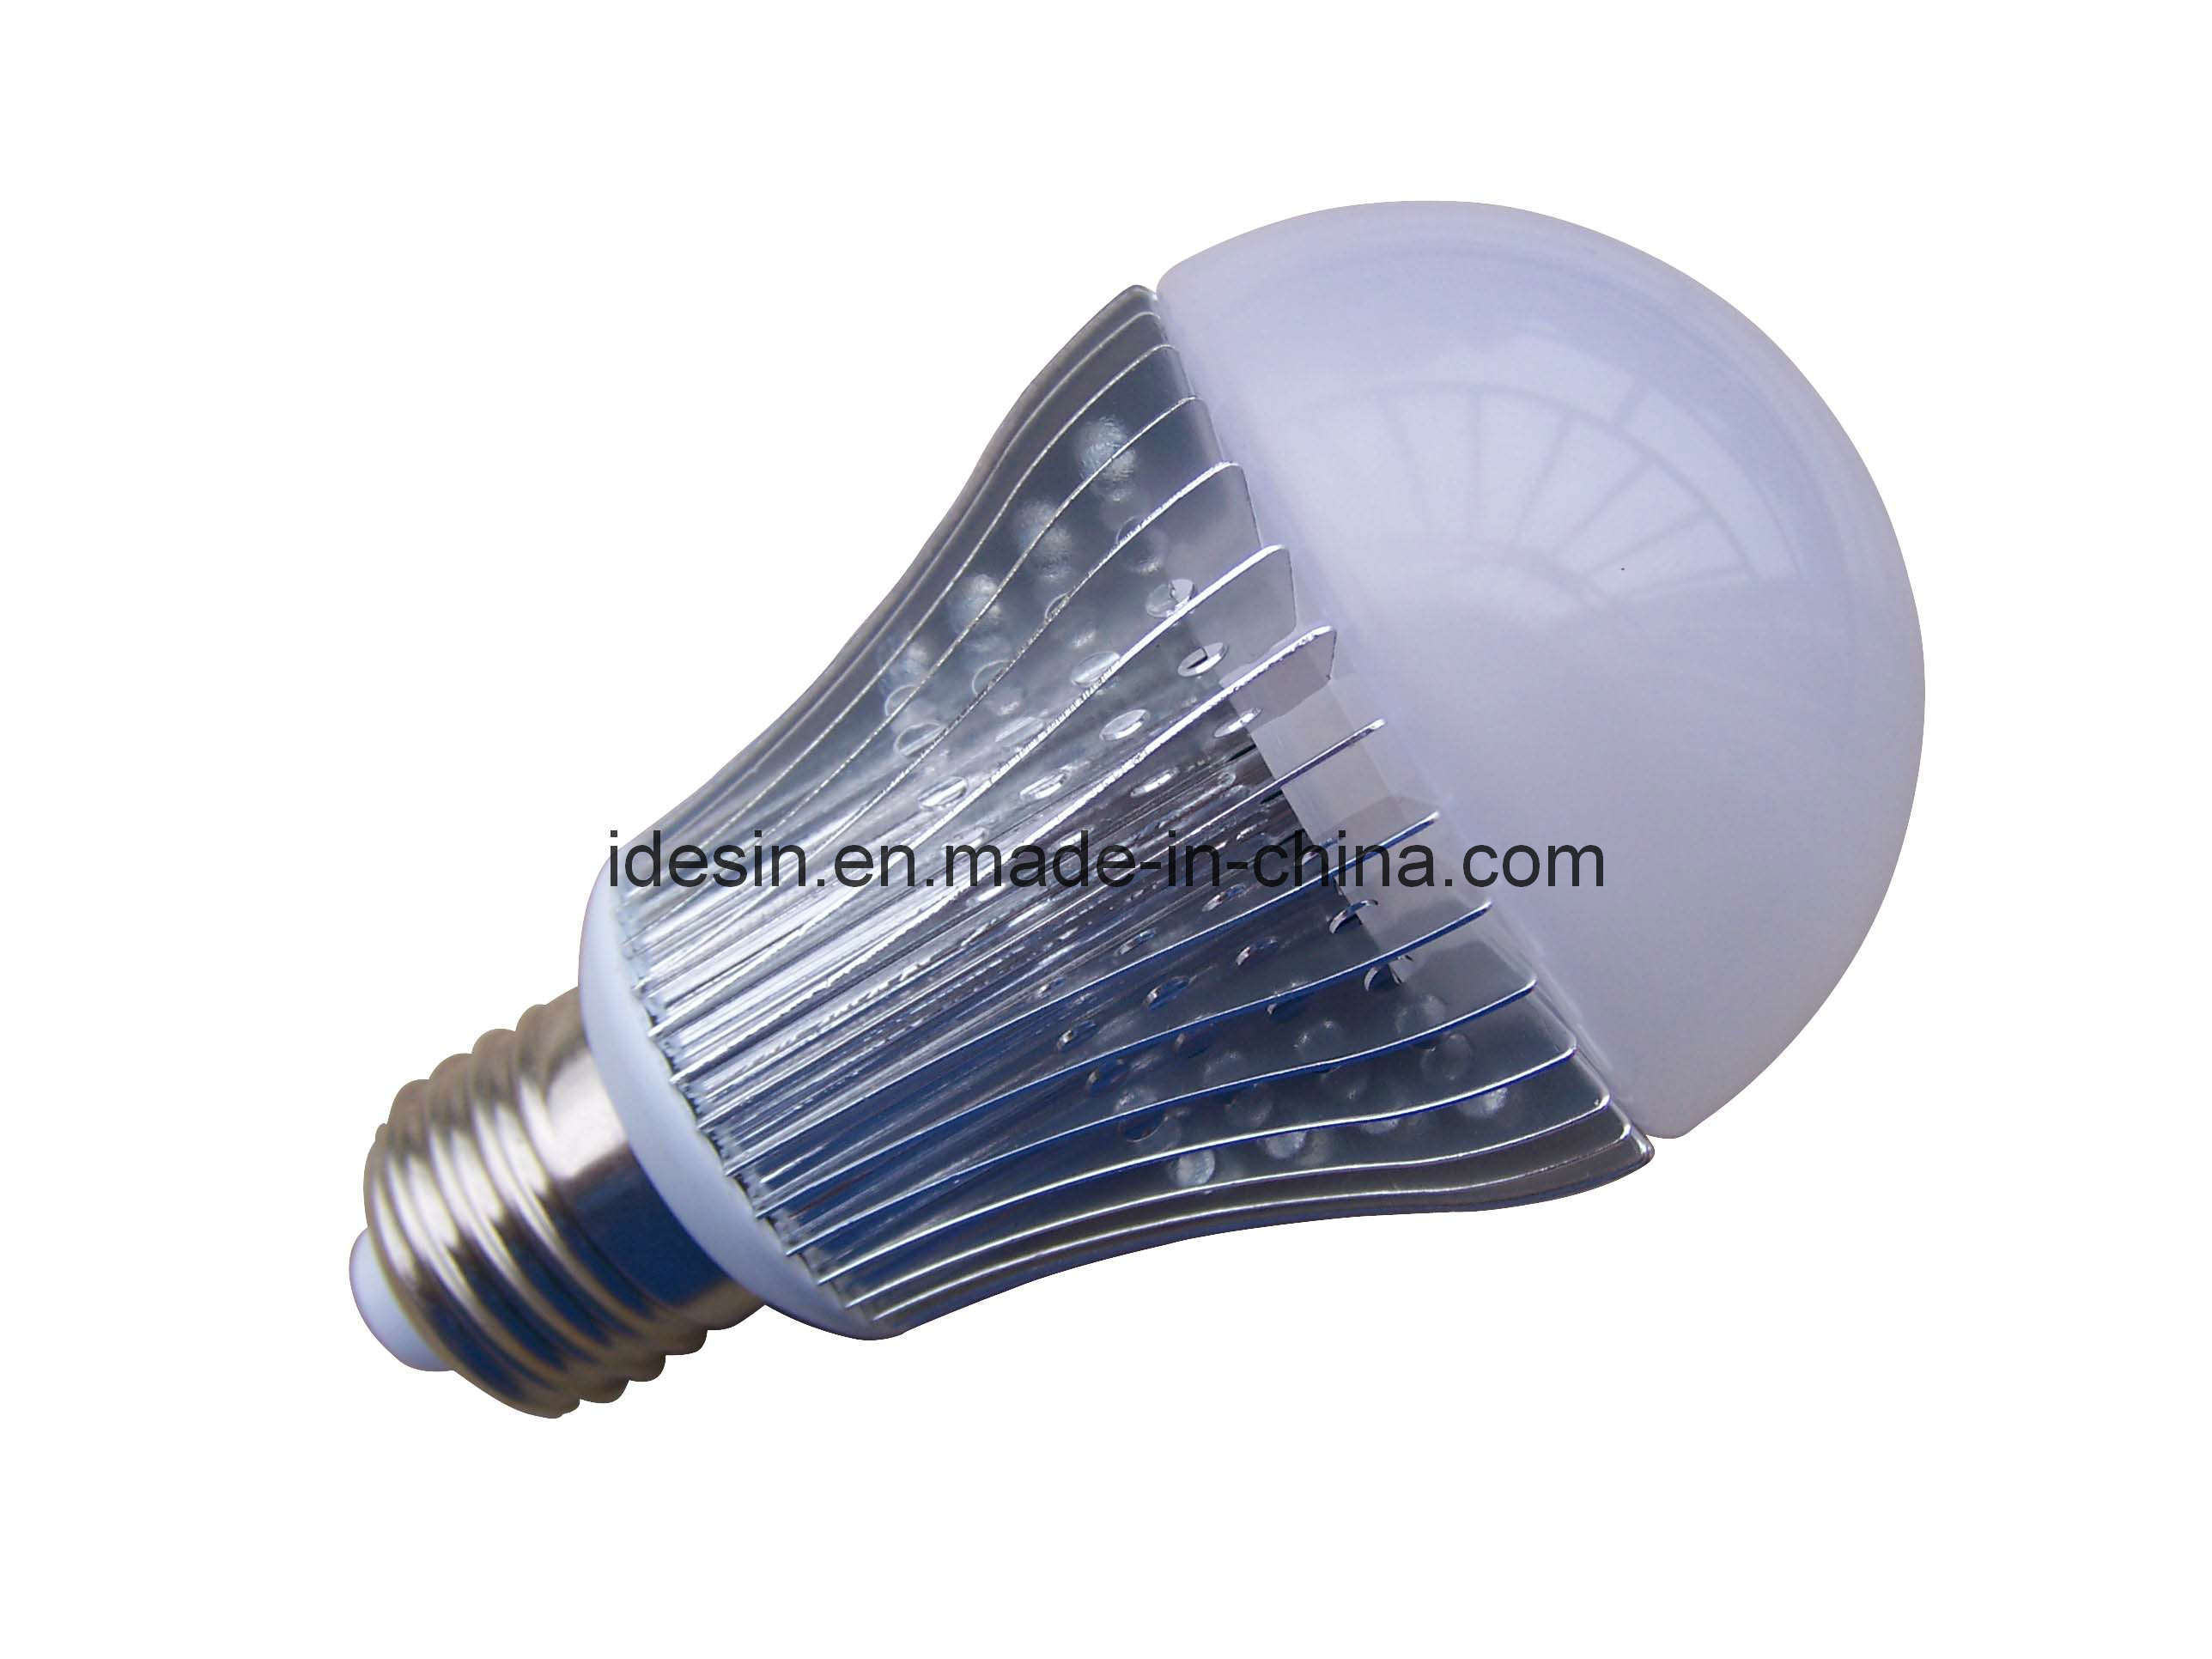 Compact Led Light Bulbs Compact Edison Medium Base A45 Led Bulb 6 5w Compact Led Bulb Roger